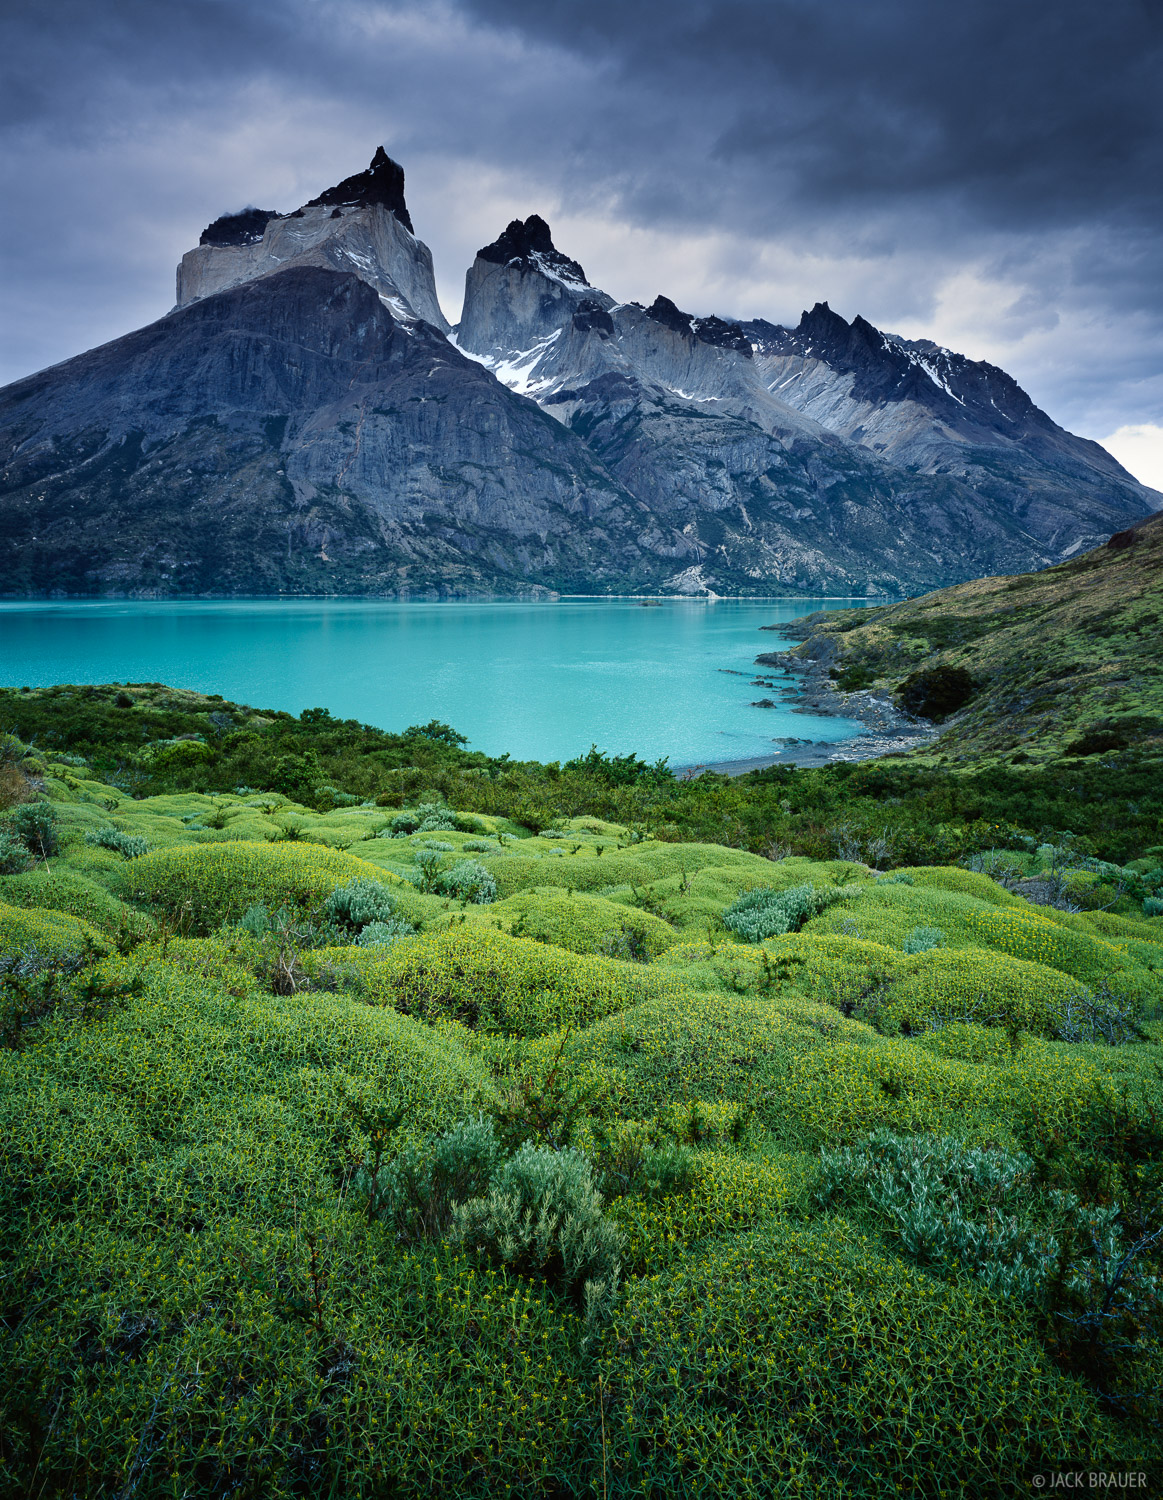 Cuernos del Paine rise more than 8,000 vertical feet straight above Lago Nordenskjold in Torres del Paine National Park, Chile.